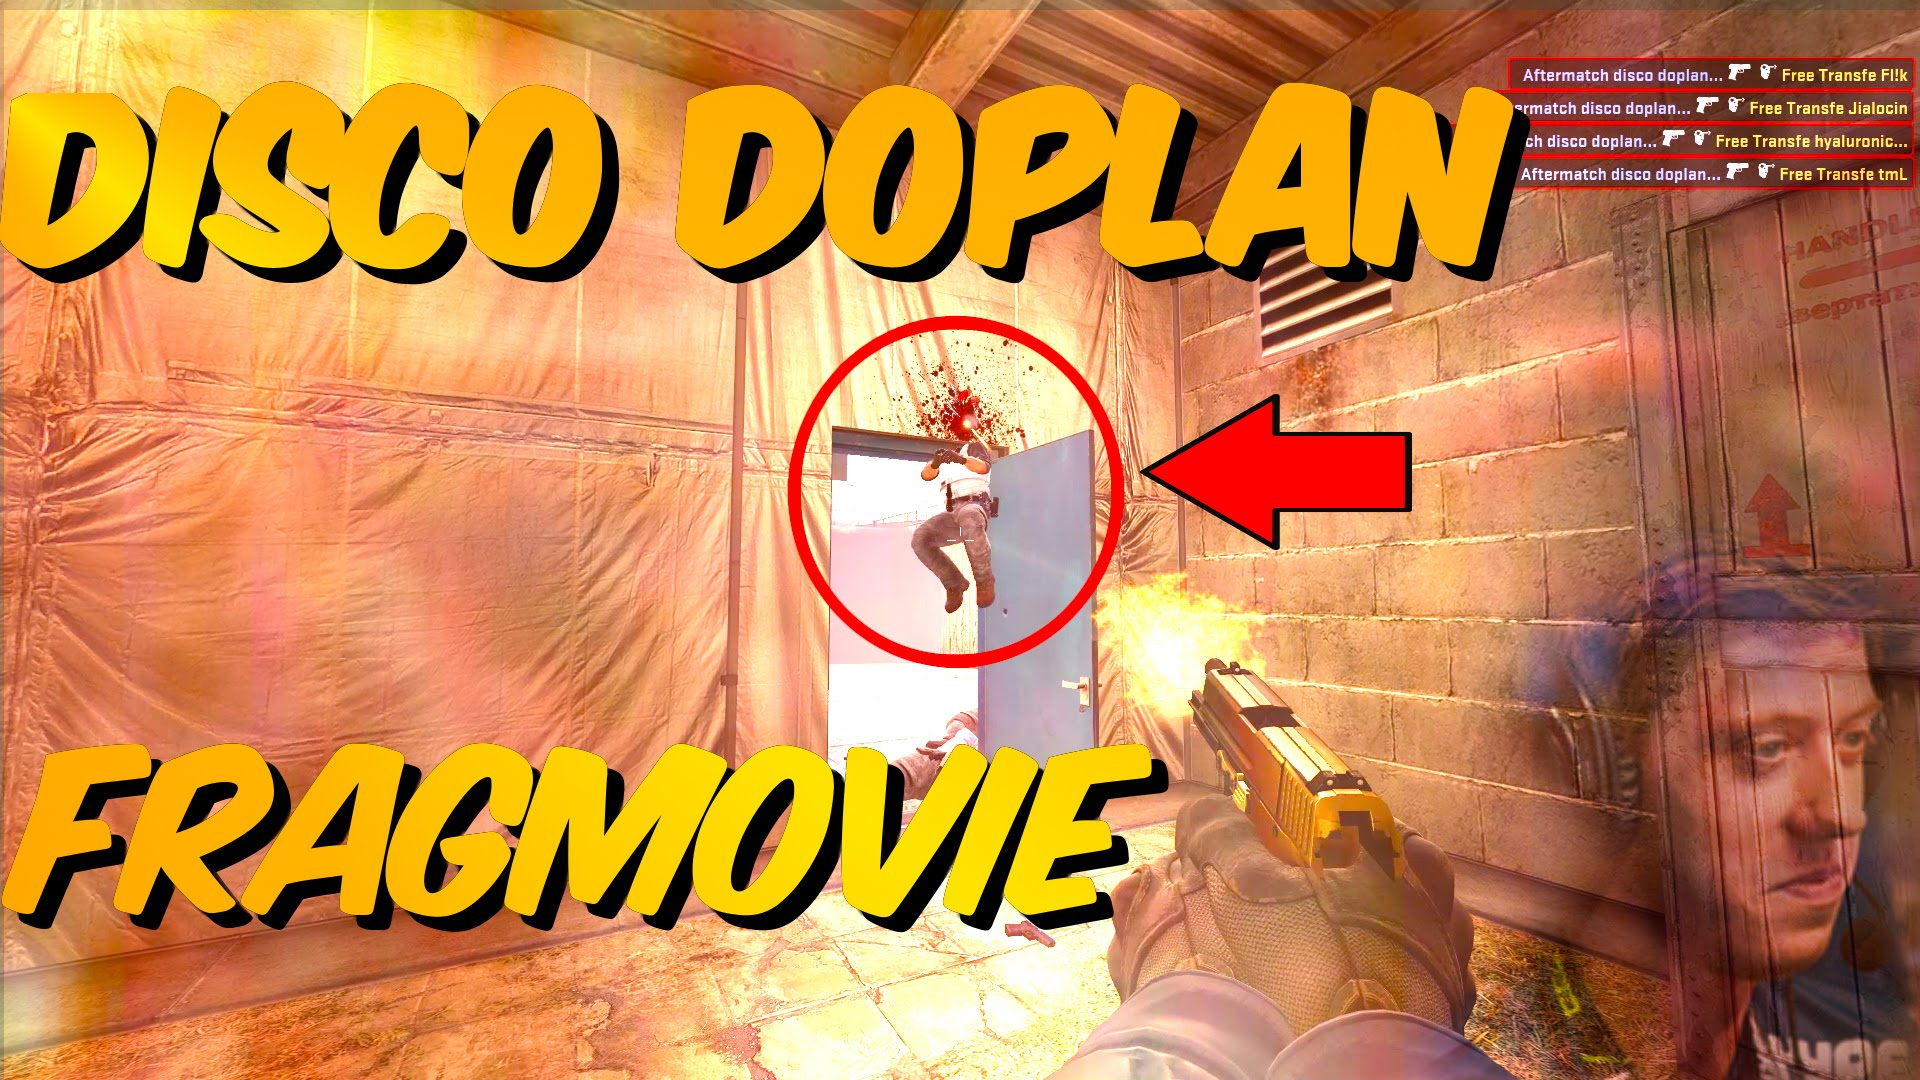 Disco-Doplan-Fragmovie-by-silent-games-globaloffensive-CSGO-counterstrike-hltv-CS-steam-Valv-wallpaper-wpc5804143